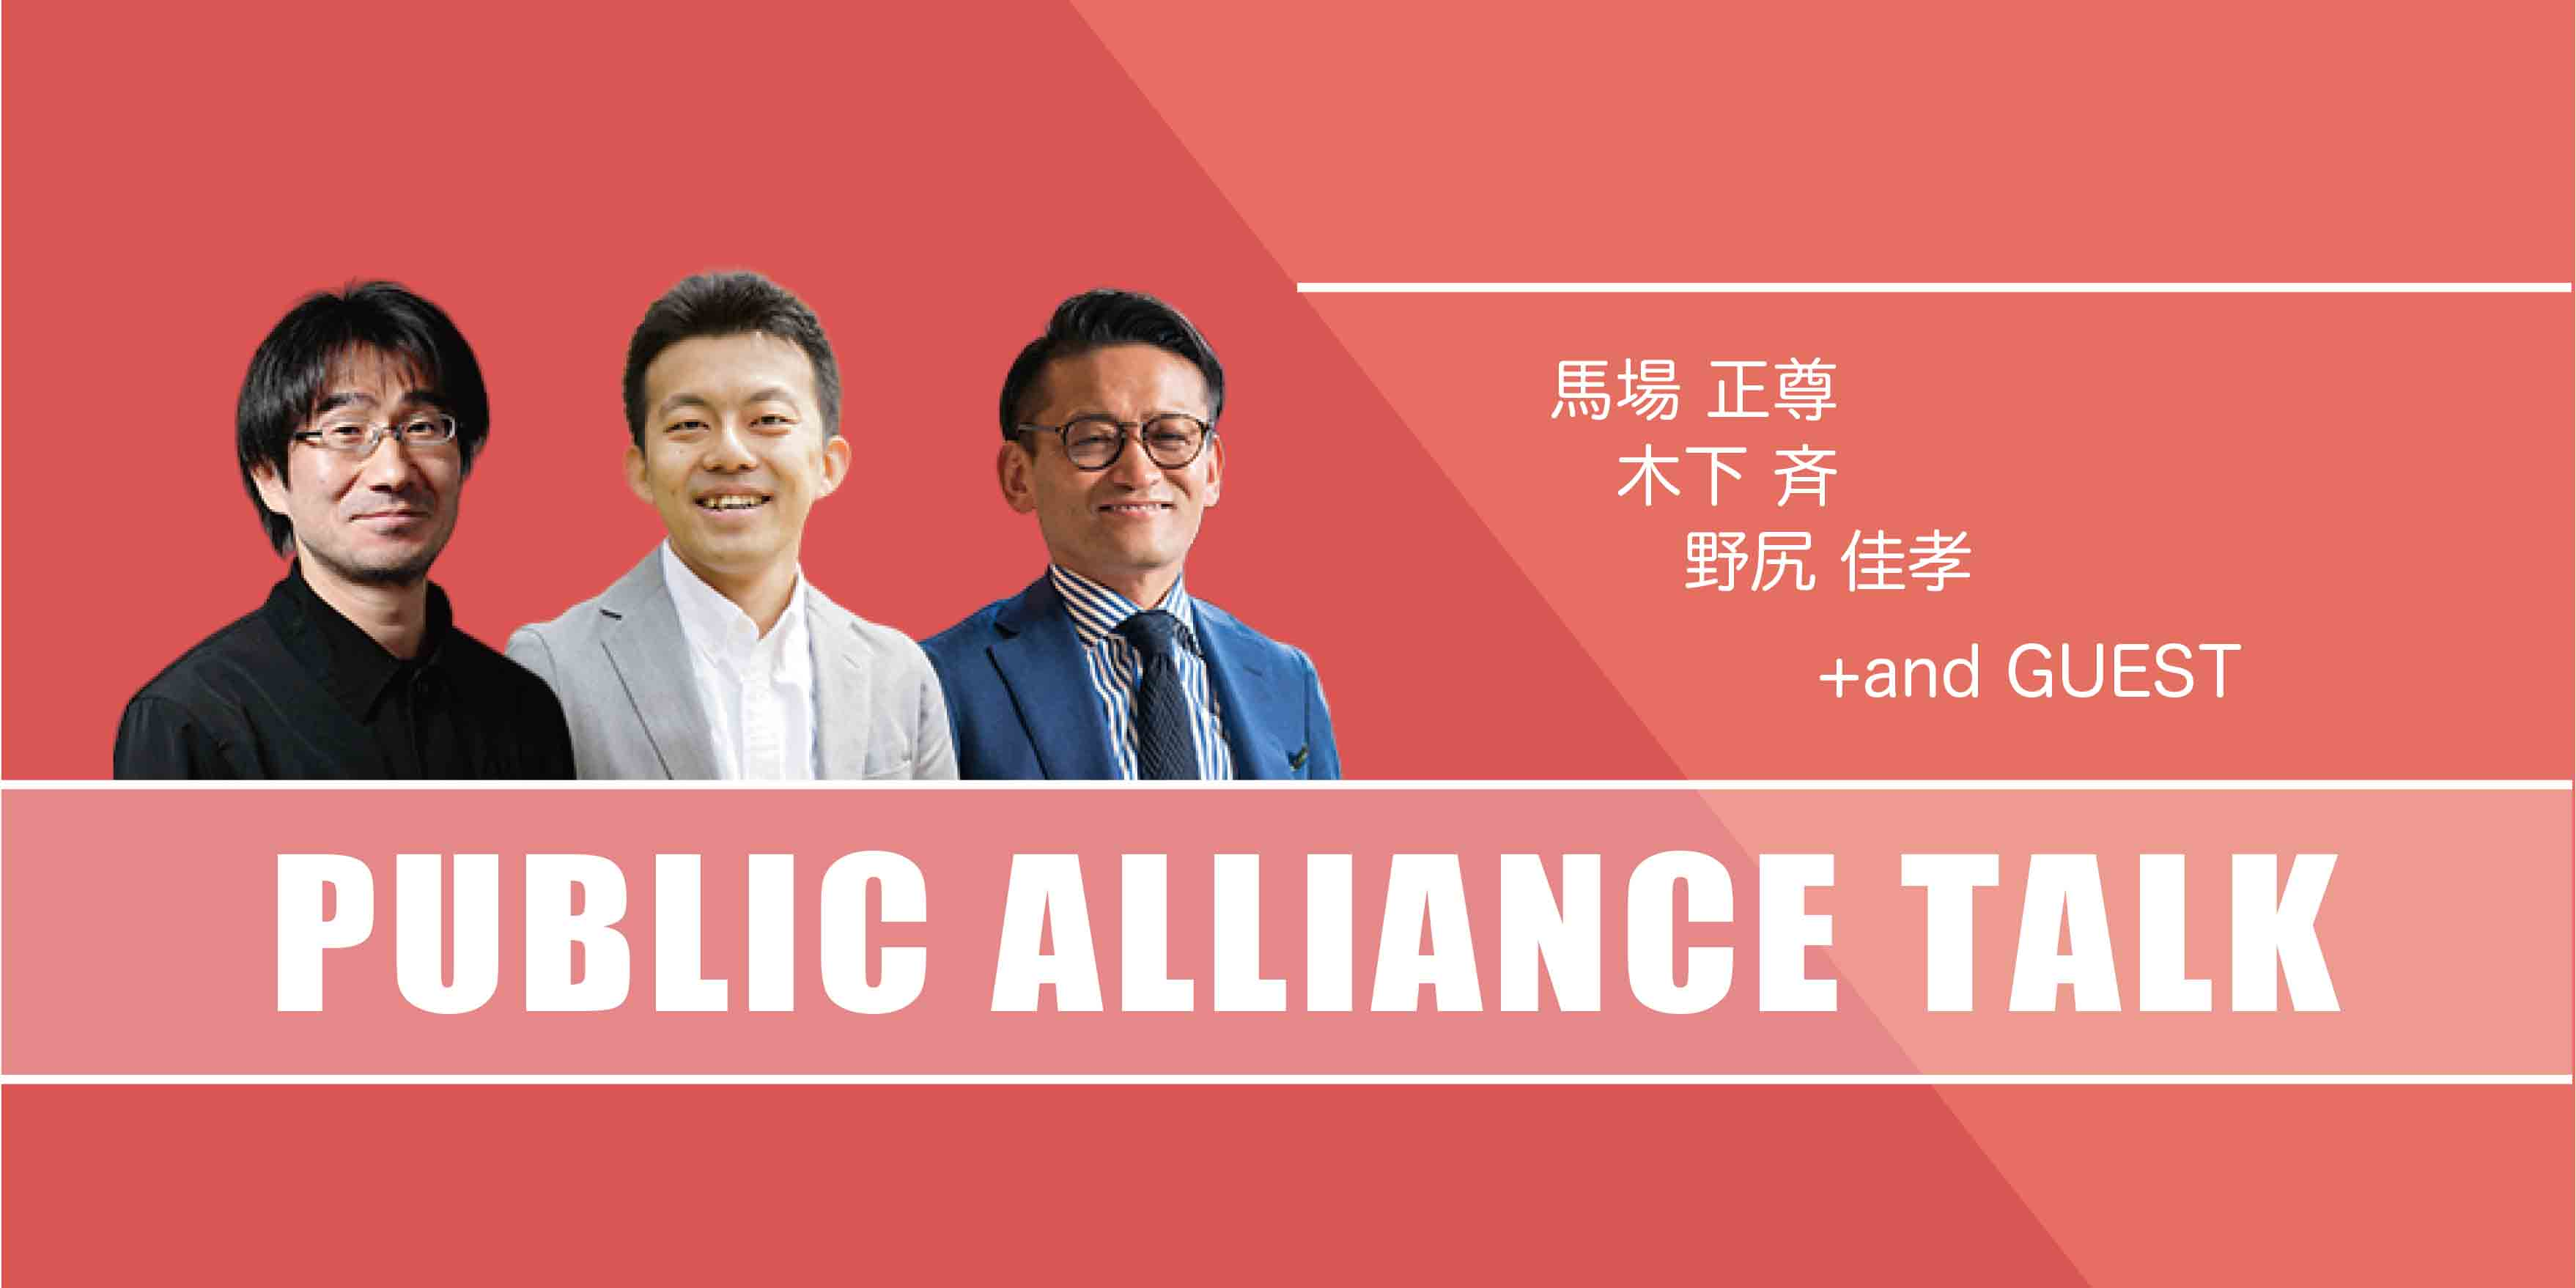 PUBLIC ALLIANCE TALKのイメージ画像